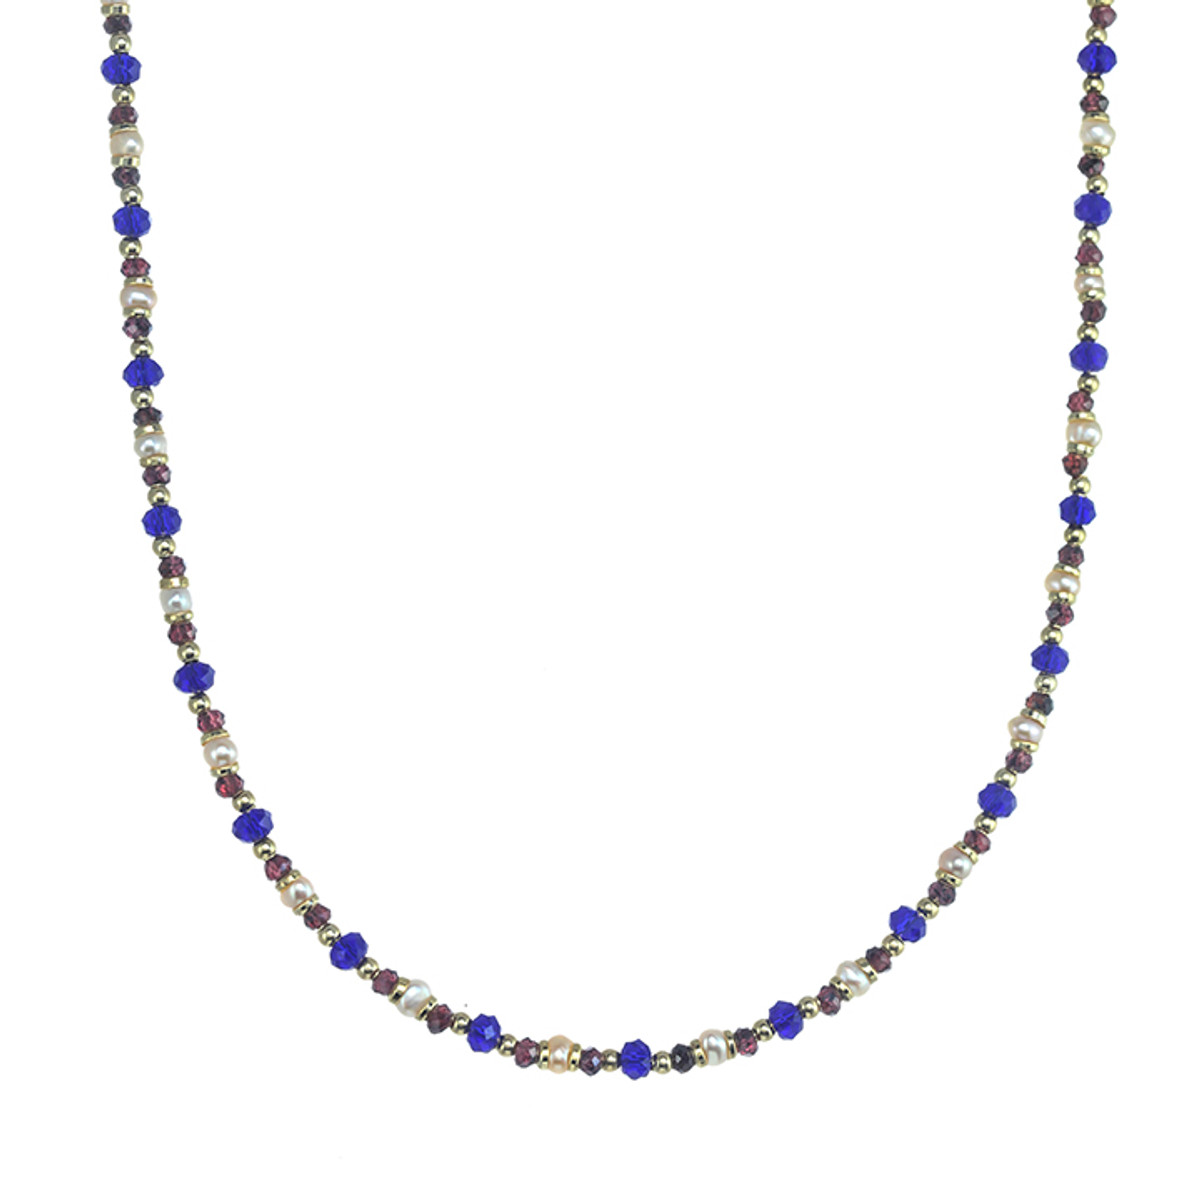 Michal Golan Solstice Choker Necklace